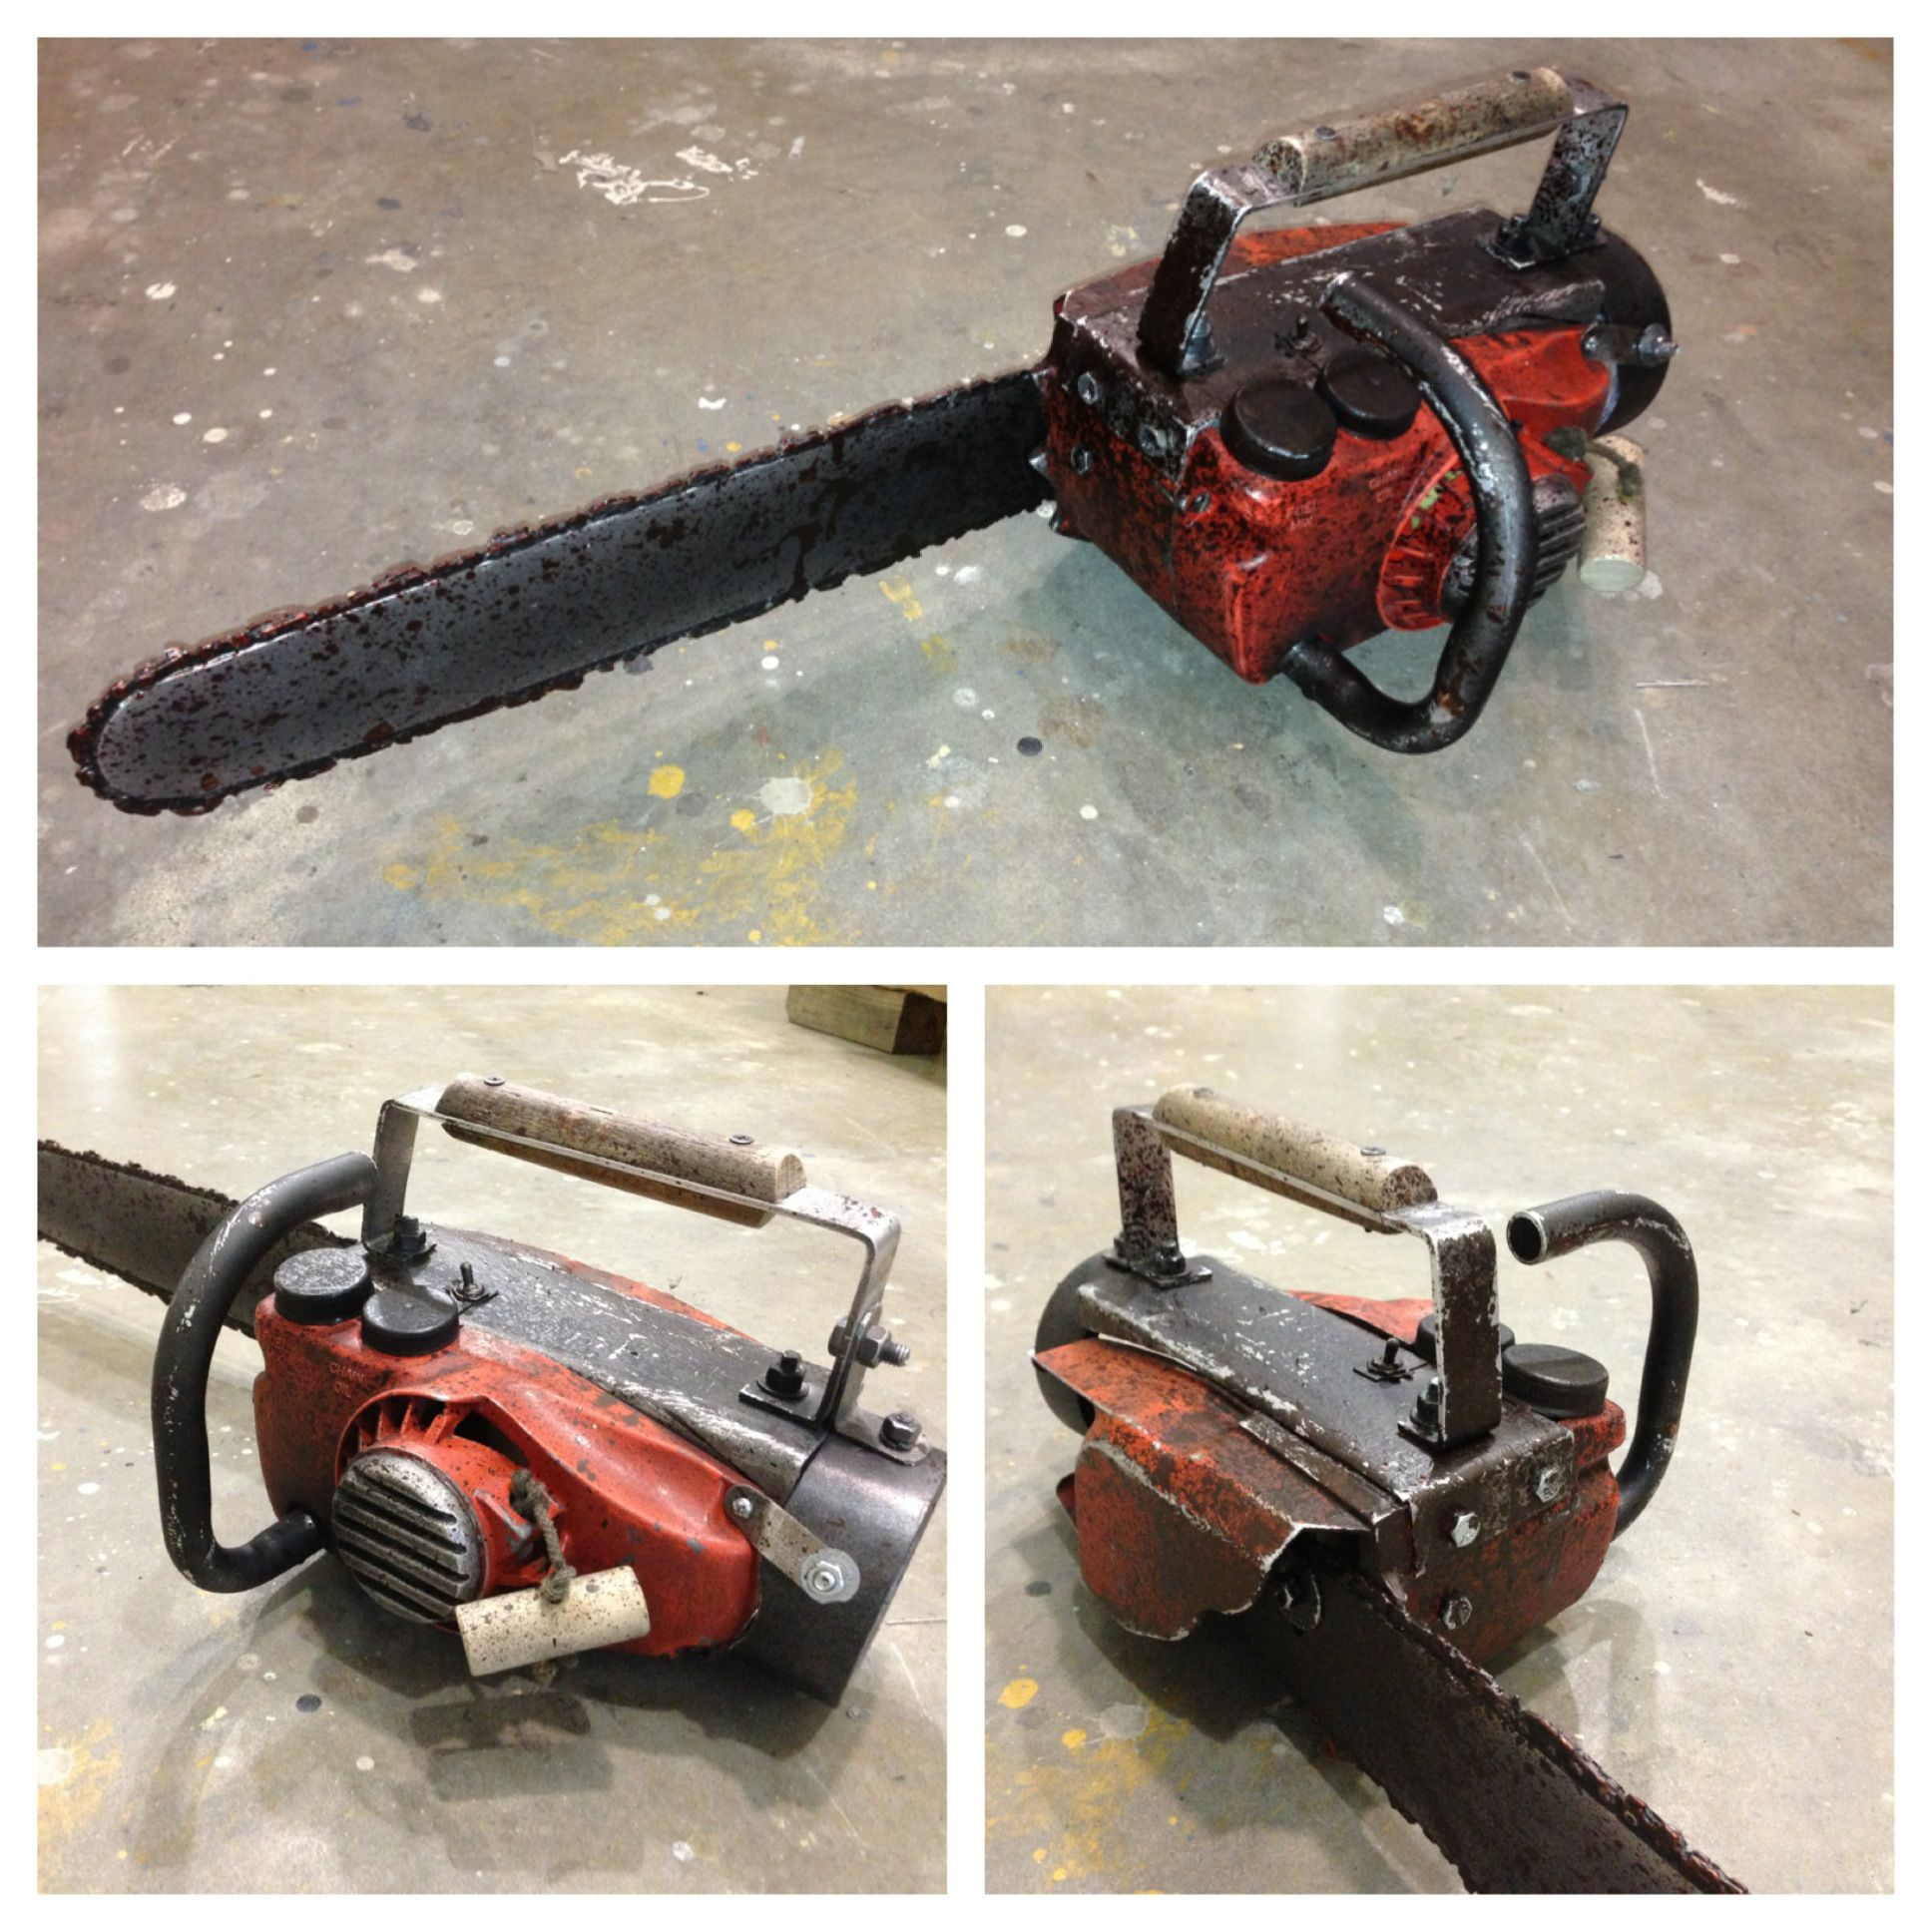 The famous evil dead 2 chainsaw hand a prop i made from an original the famous evil dead 2 chainsaw hand a prop i made from an original homelite xl chainsaw body altered to resemble the saw that ash bruce campbell wields greentooth Choice Image